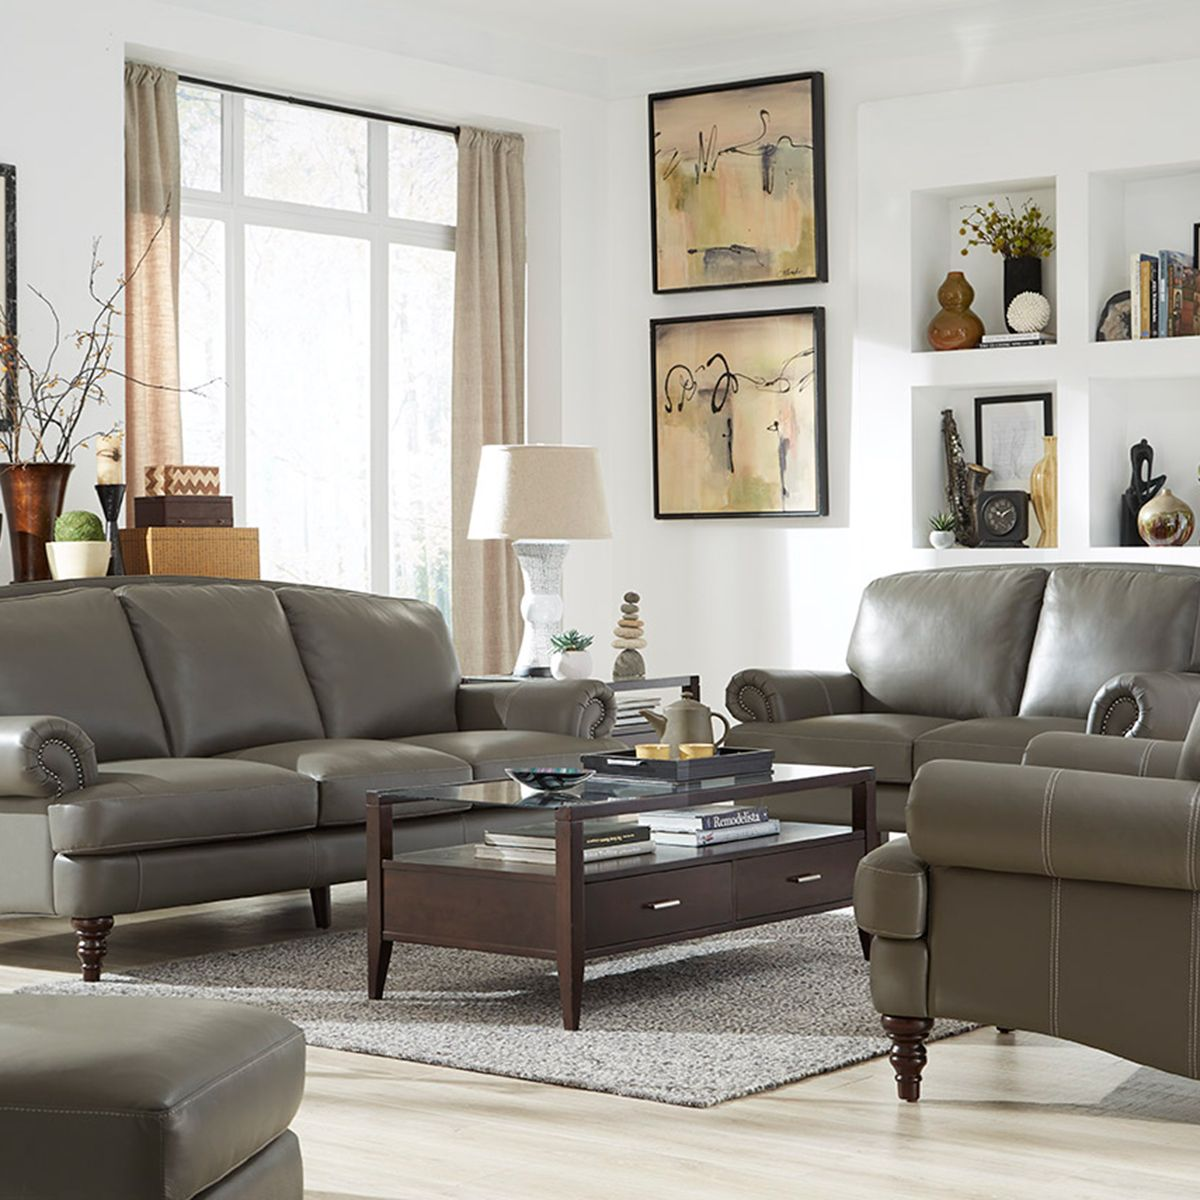 bentley white three f seating colored schillig master sofas at seat leather off furniture ewald sofa s blush glam id style